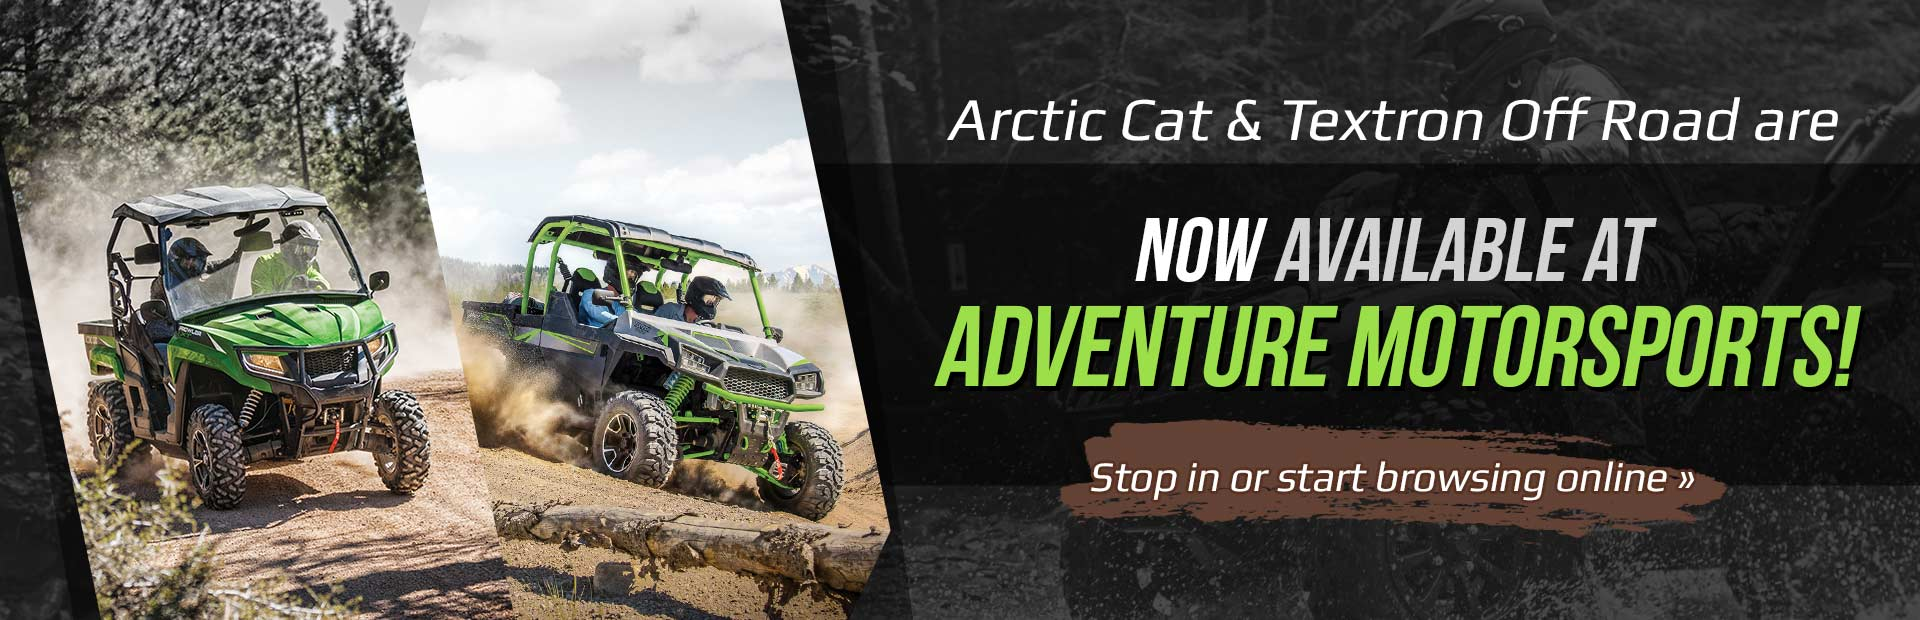 Arctic Cat & Textron Off Road are now available at Adventure Motorsports! Stop in or start browsing online.